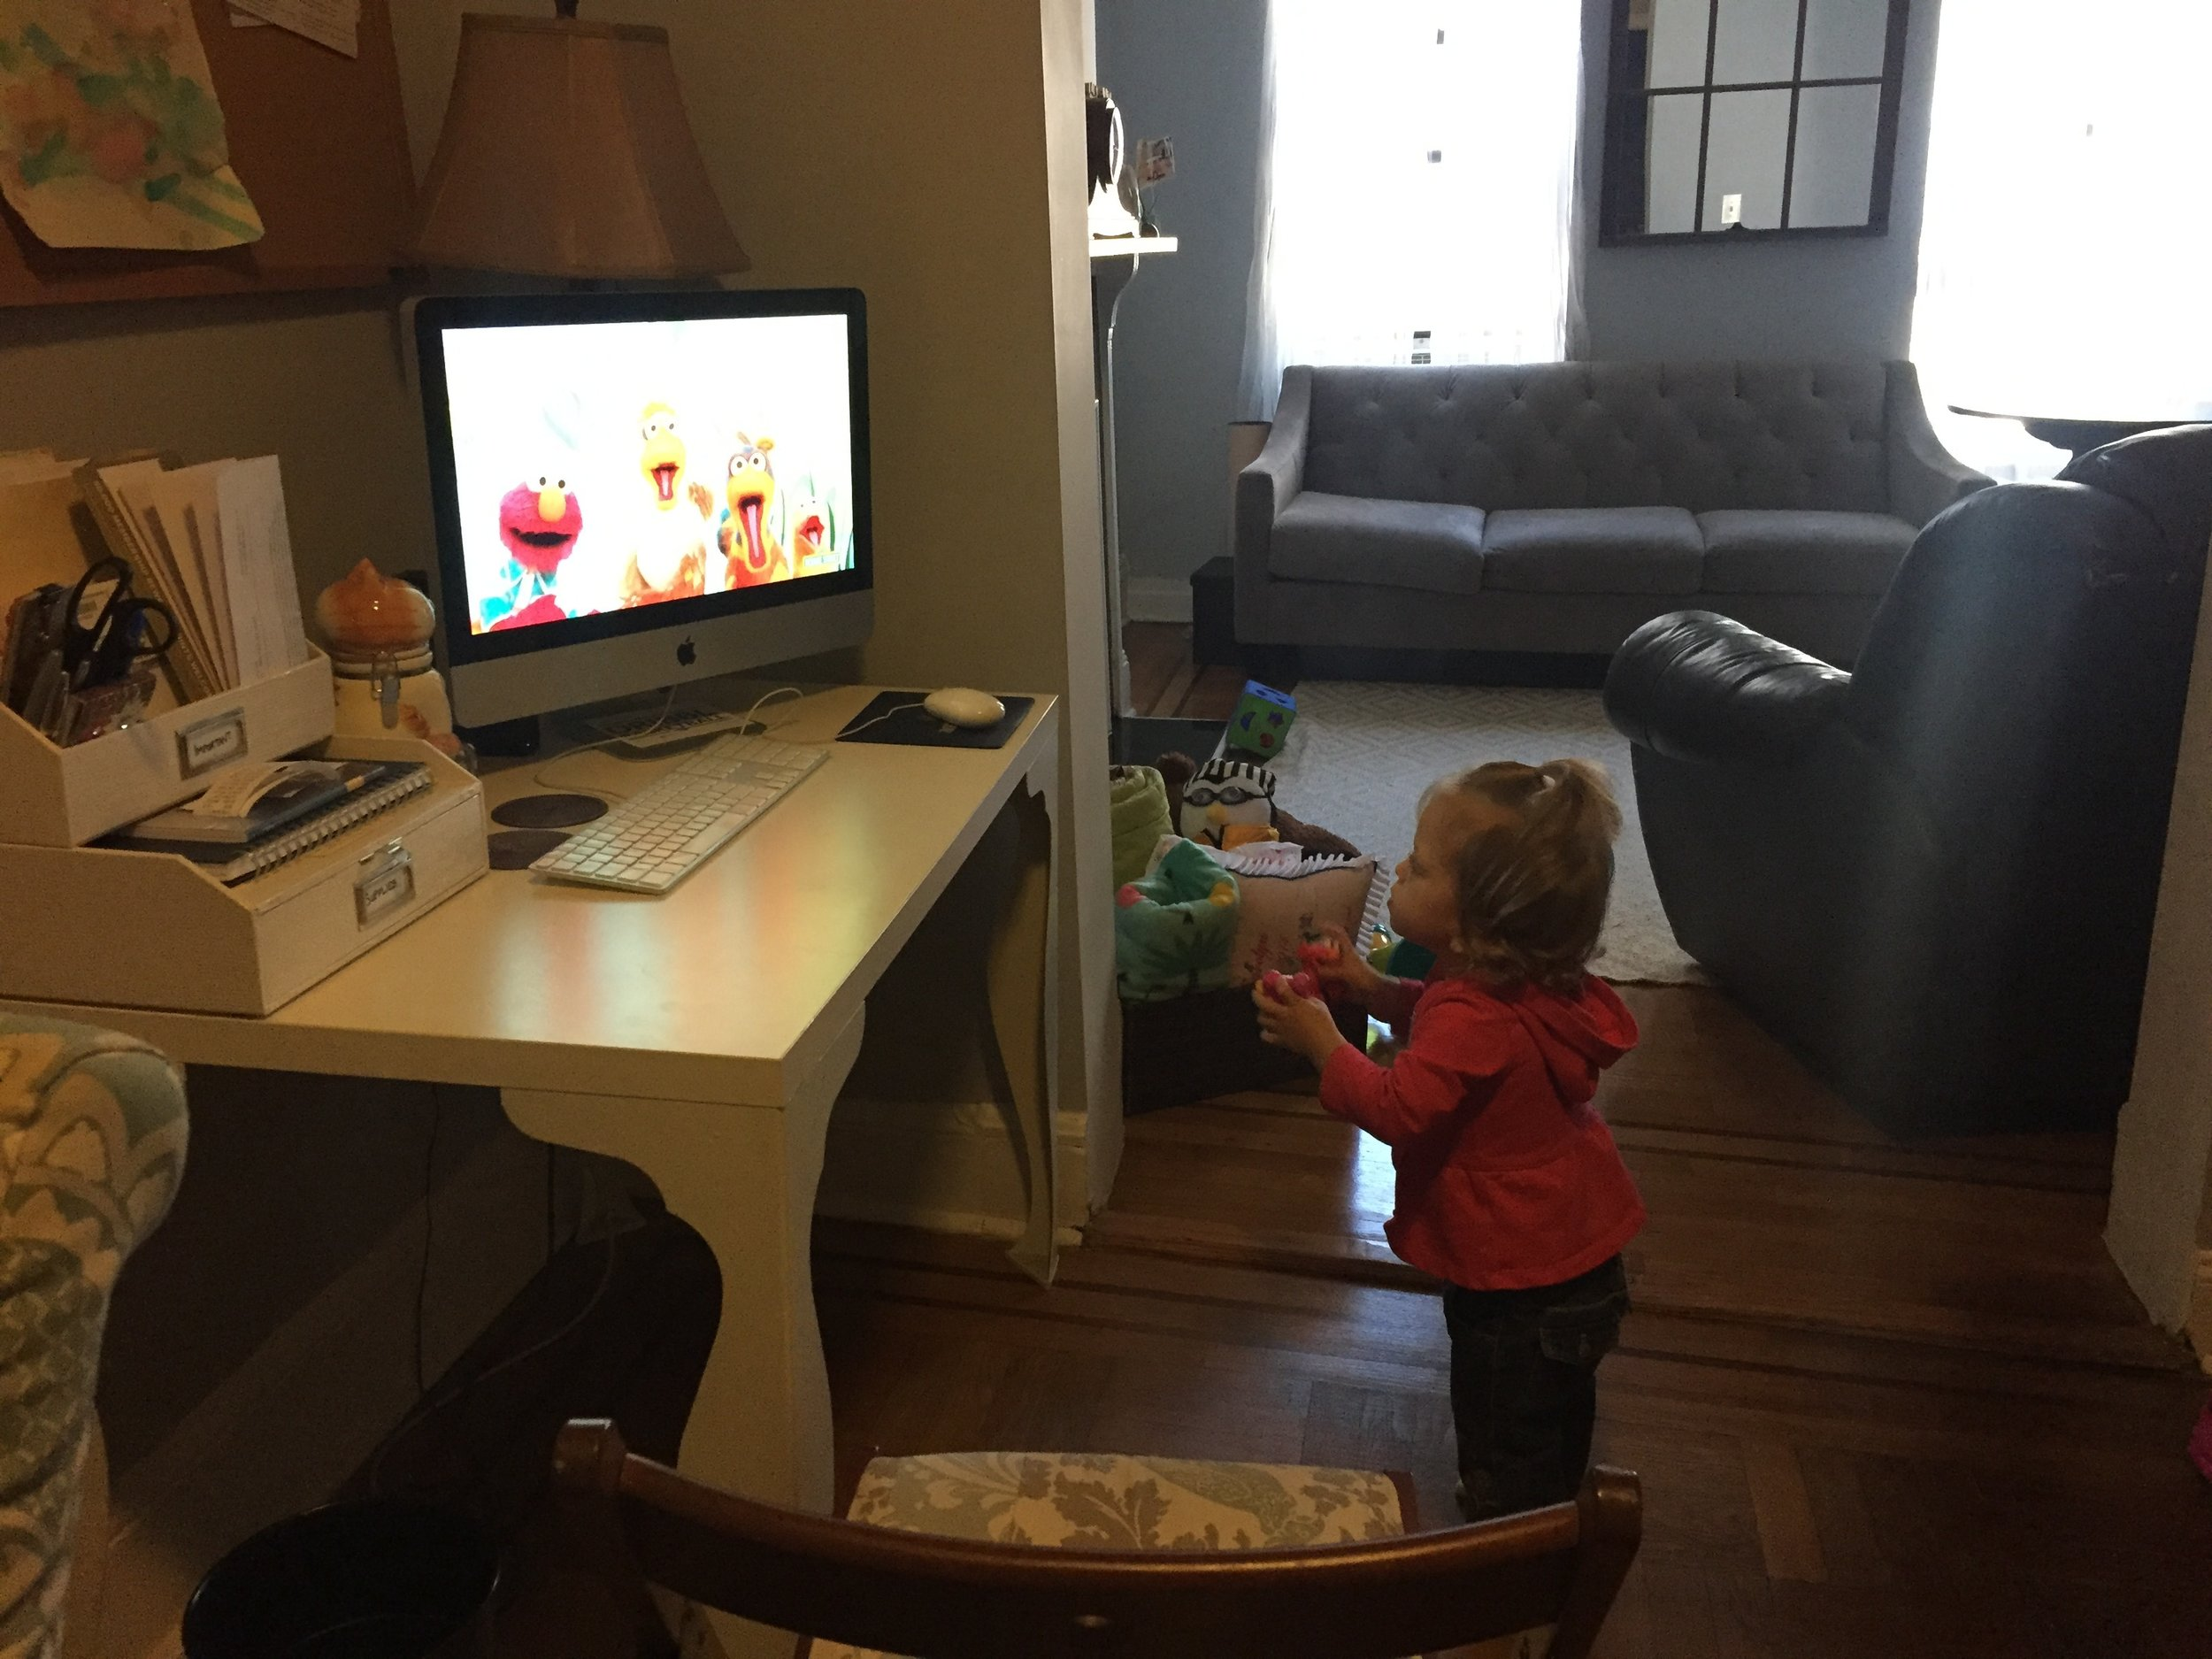 Grandma and Abo got Lucie a toy with Elmo and Abby and she LOOOOVES them. Every once in a while we watch YouTube videos of Elmo, she grabs her toys and dances along to the songs with them.